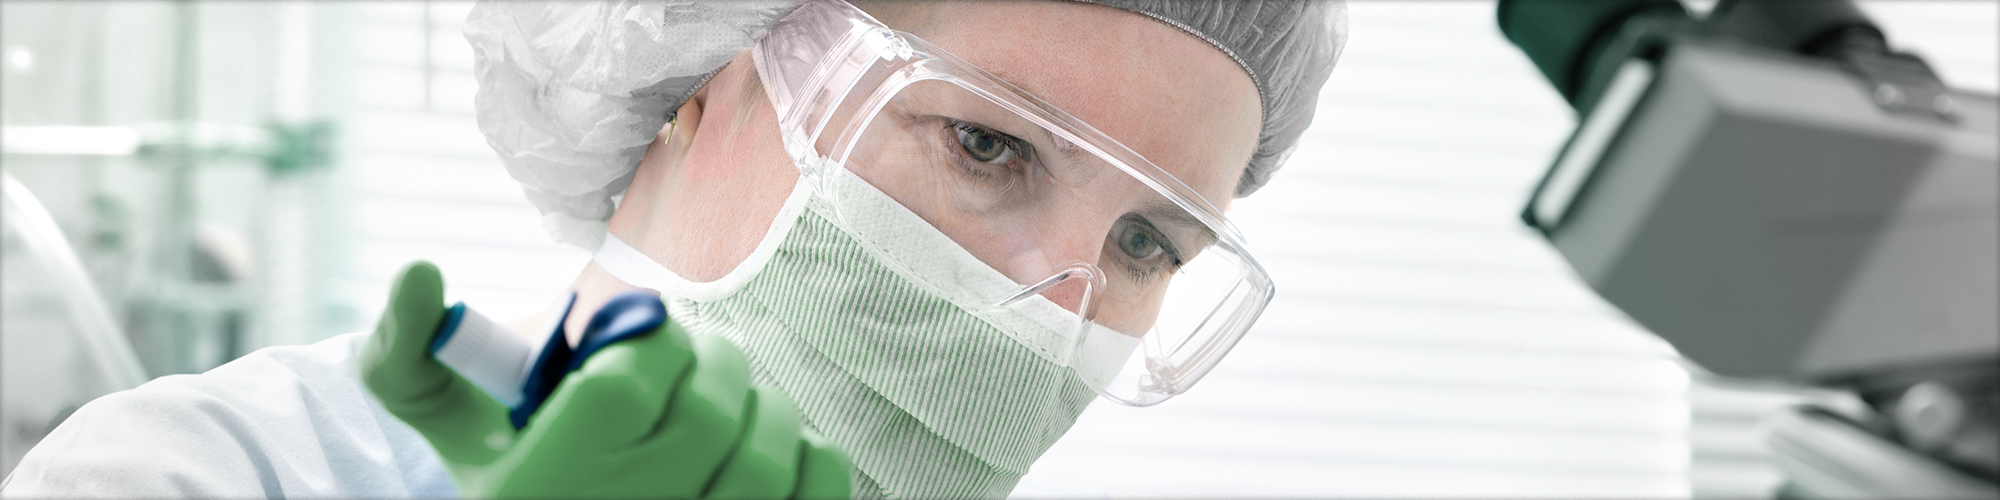 Scientist Wearing PPE